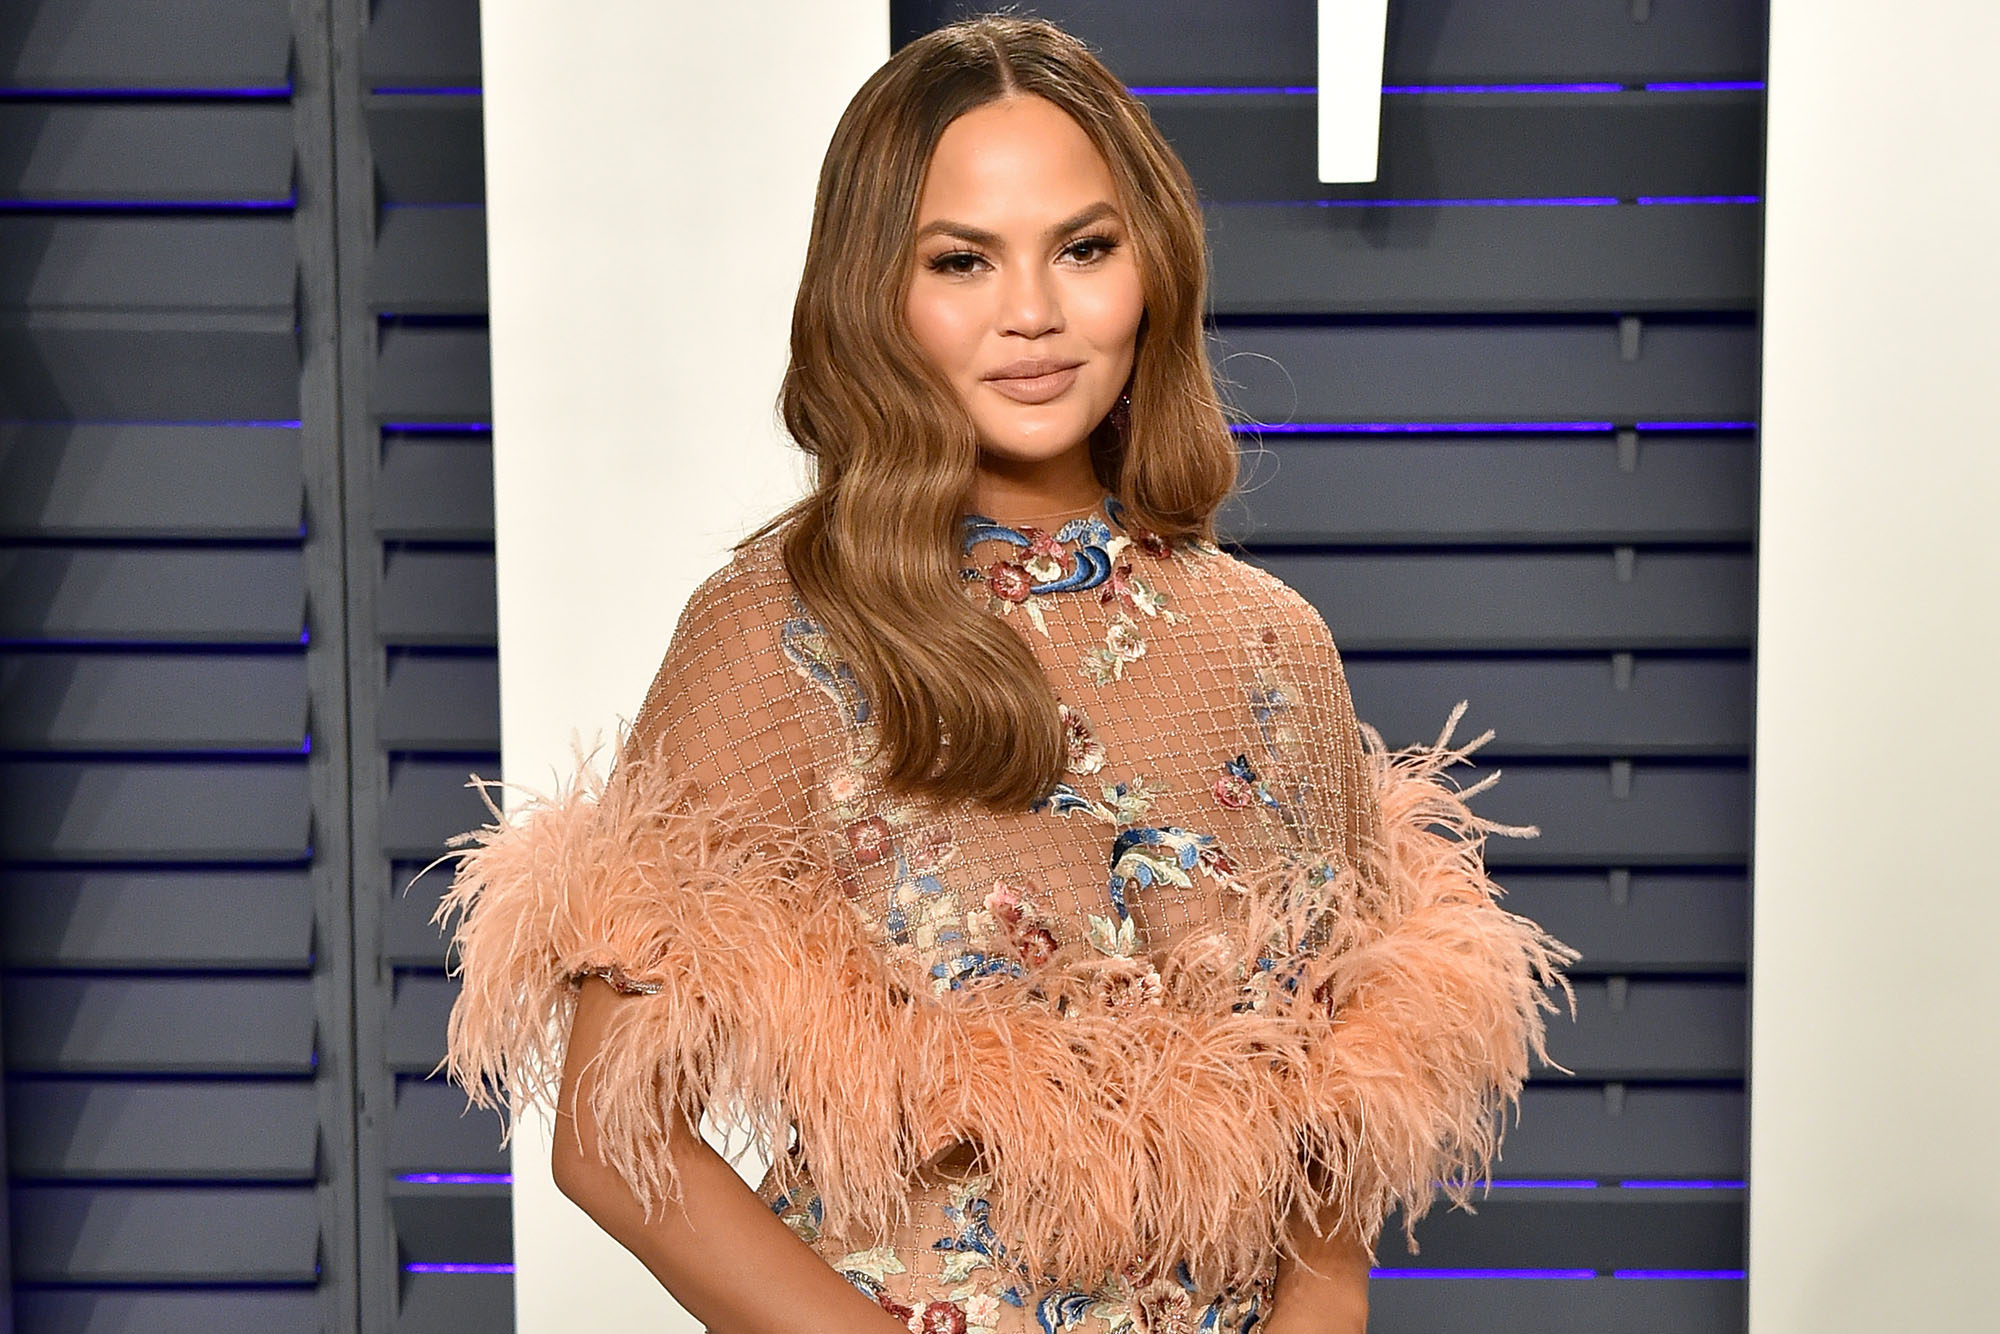 chrissy-teigen-says-she-finally-giggled-the-first-time-since-the-miscarriage-reading-this-funny-post